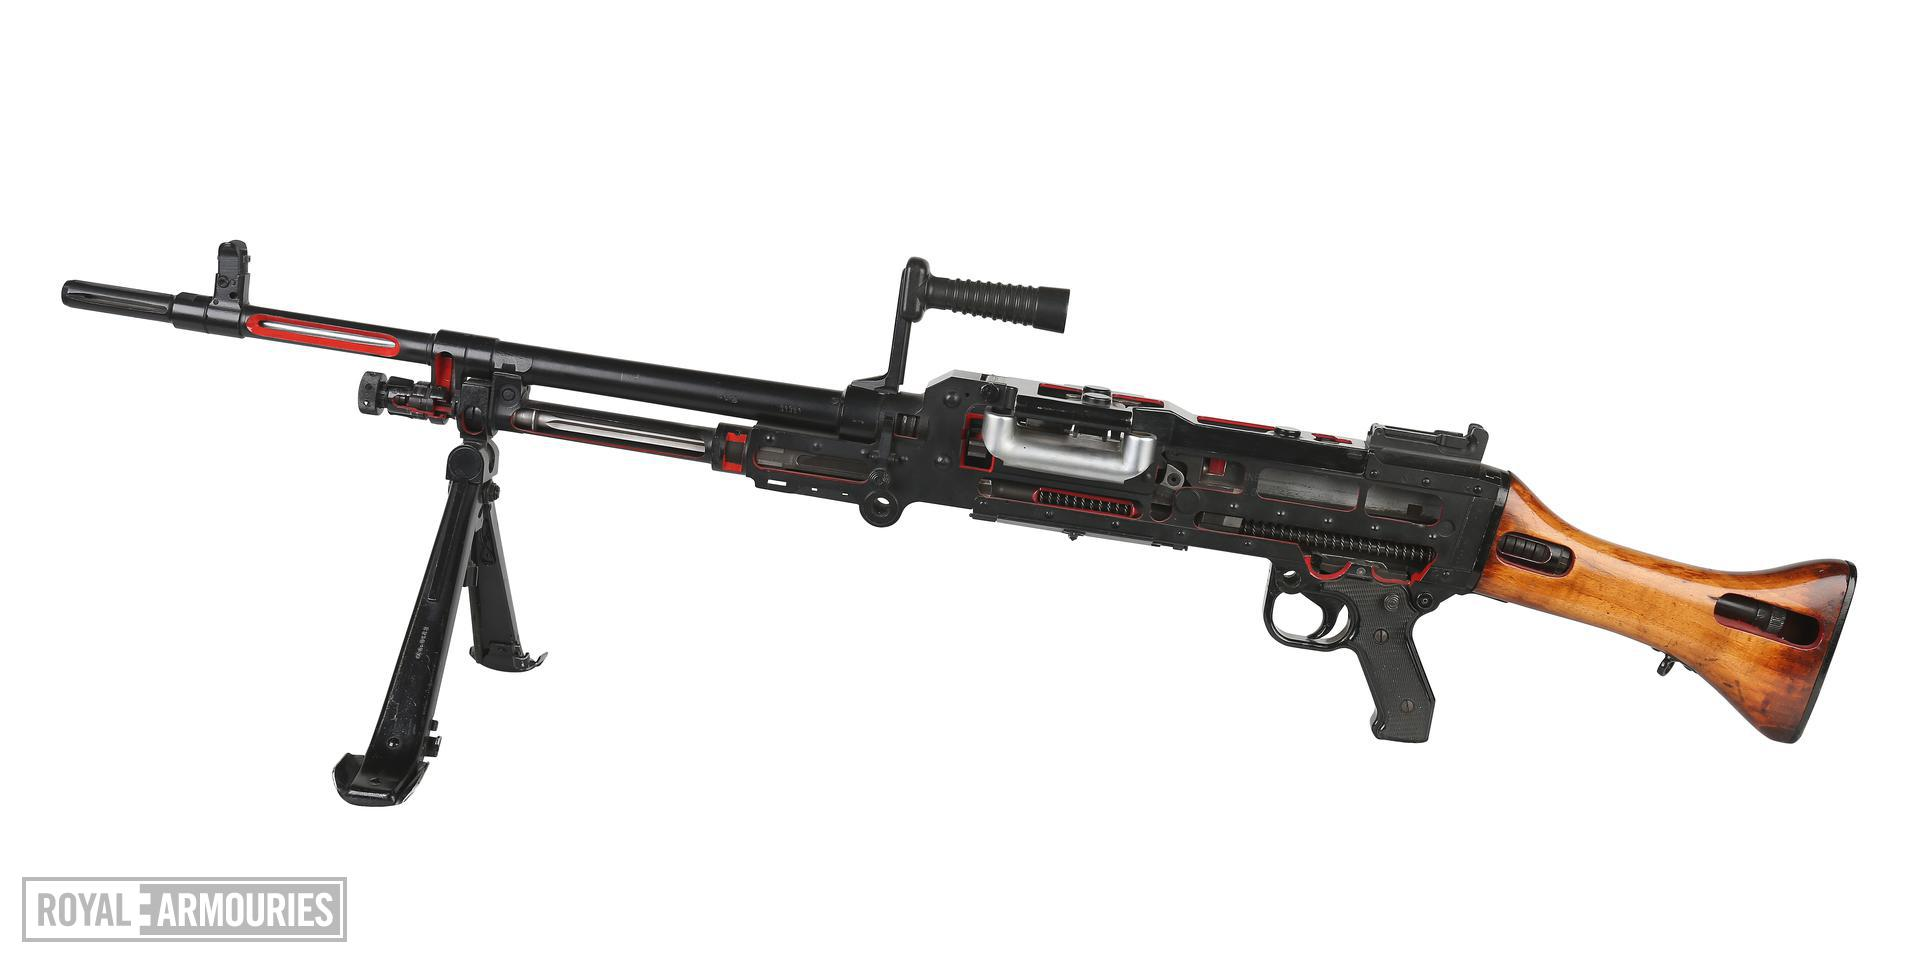 PR.7201 Centrefire automatic machine gun, GPMG FN L7A1 Skeleton